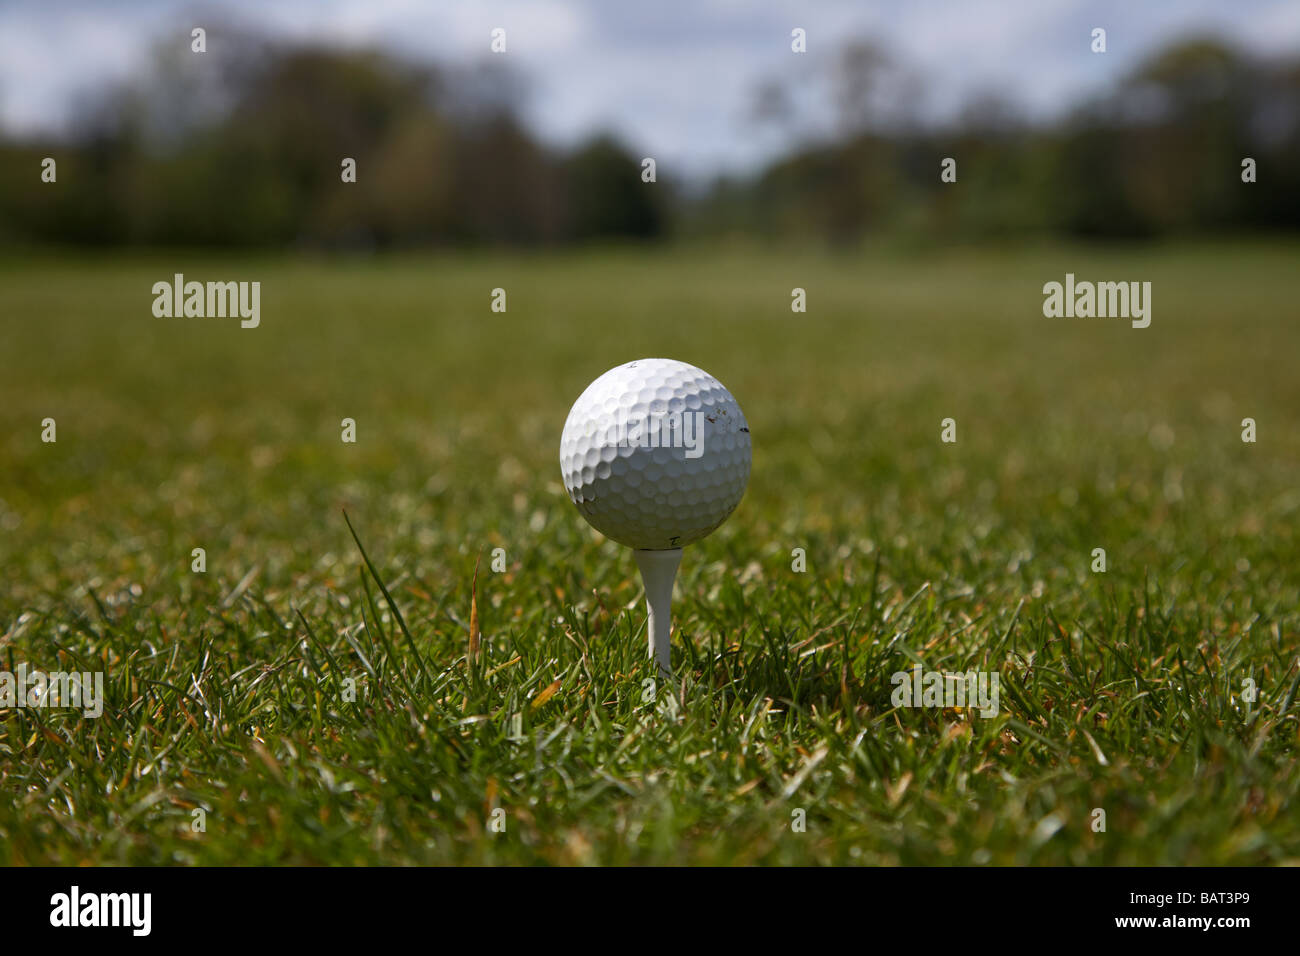 used golf ball sitting on the tee at the start of a golf course county armagh northern ireland - Stock Image